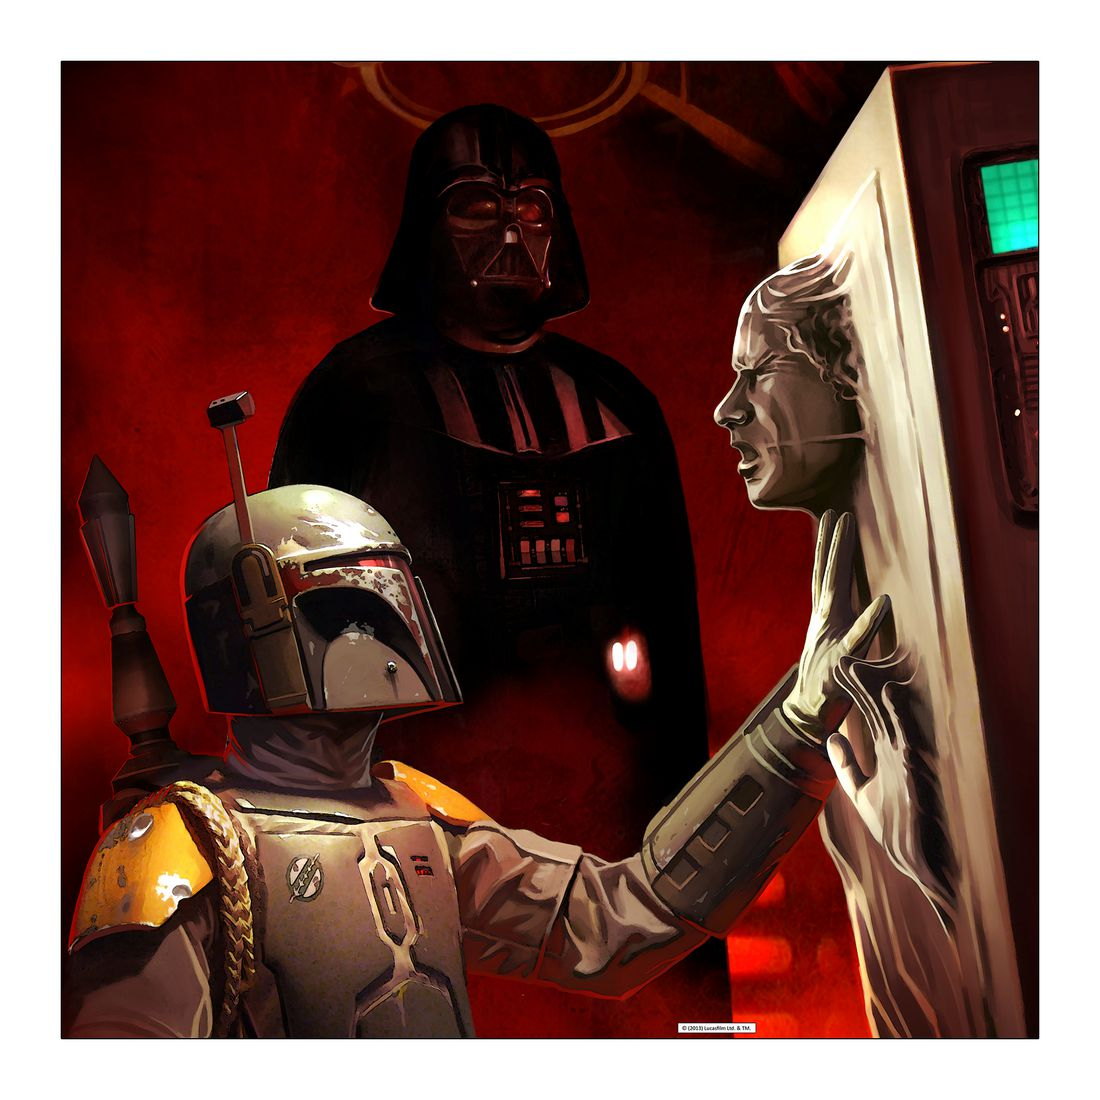 Leinwandbild Darth Vader – Boba Fett & Han Solo – Abmessung 100×50 cm, Gallery of Innovative Art günstig